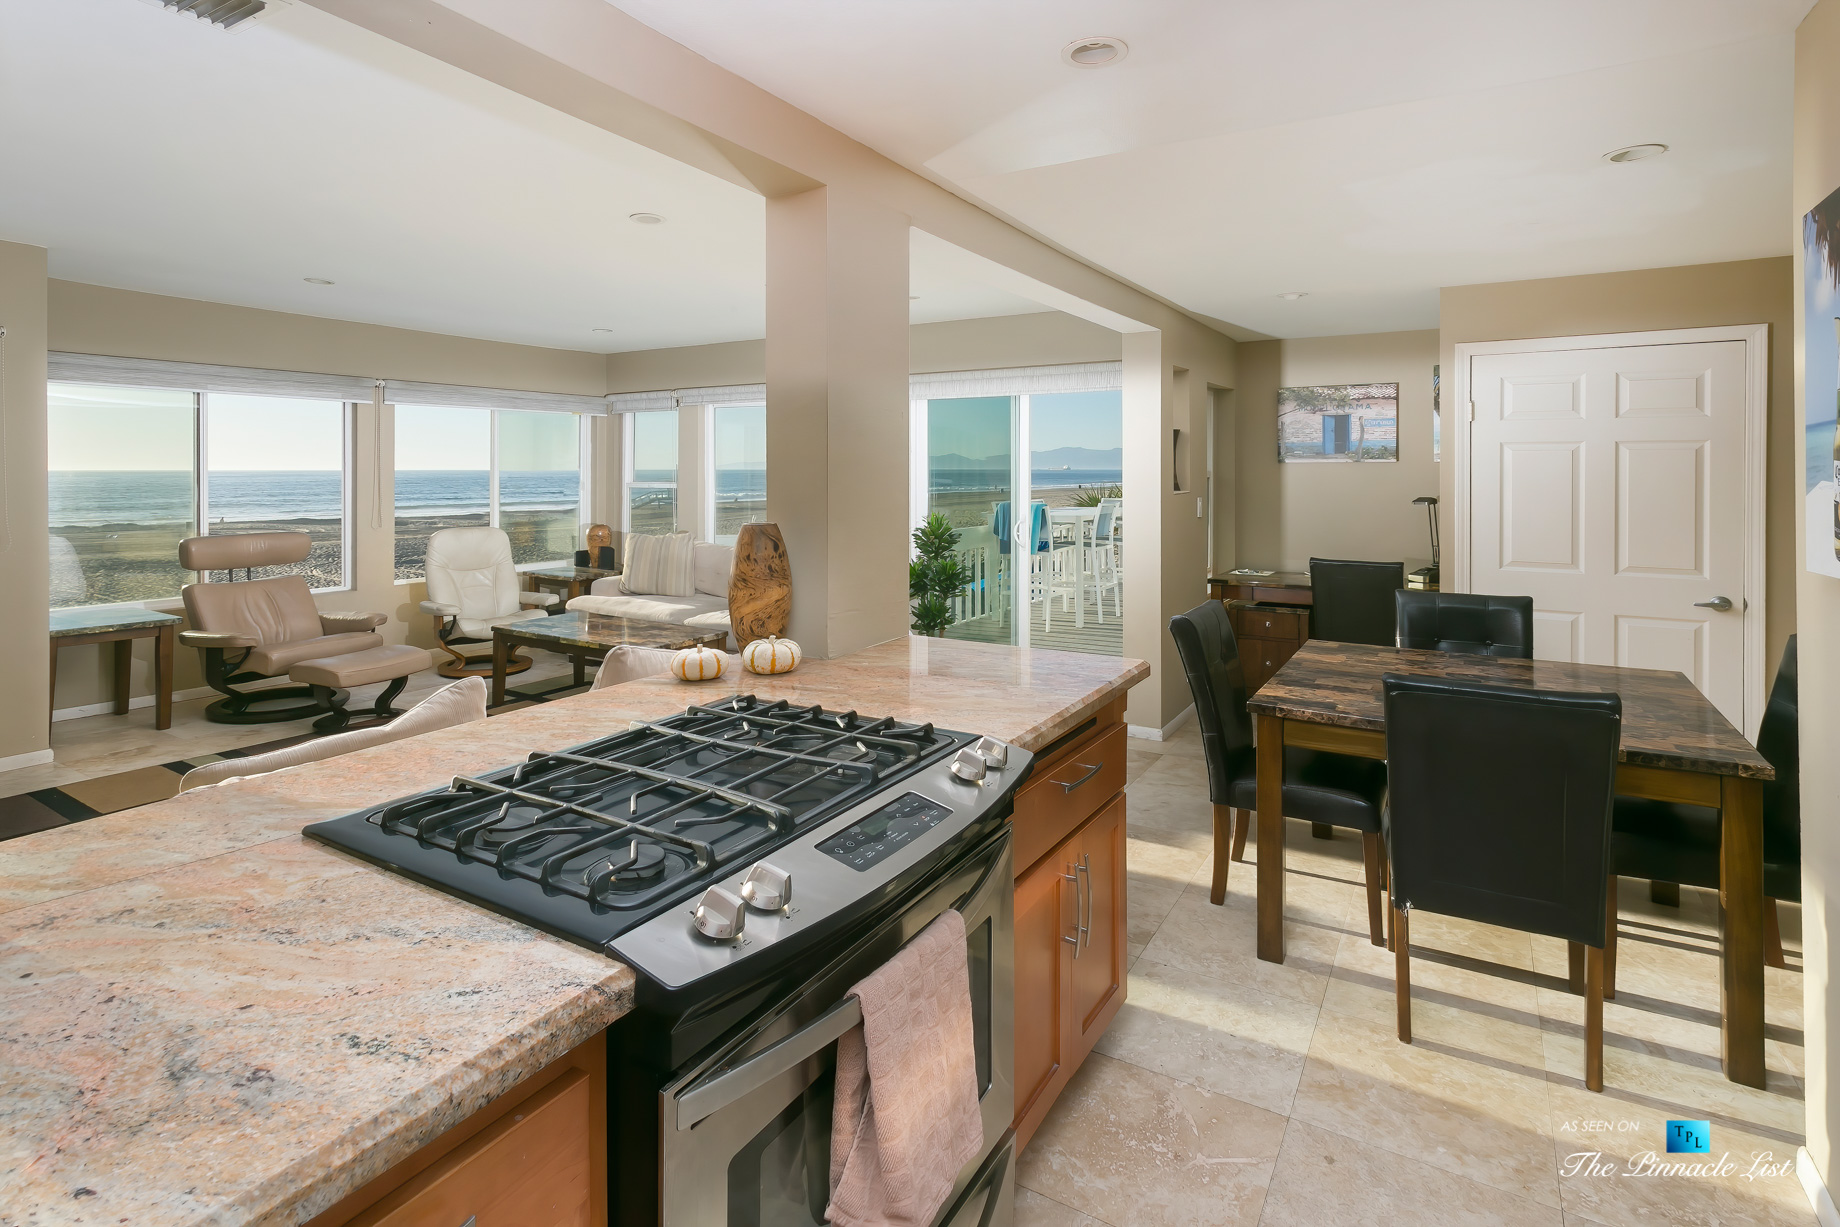 3500 The Strand, Hermosa Beach, CA, USA – Kitchen and Living Room – Luxury Real Estate – Original 90210 Beach House – Oceanfront Home